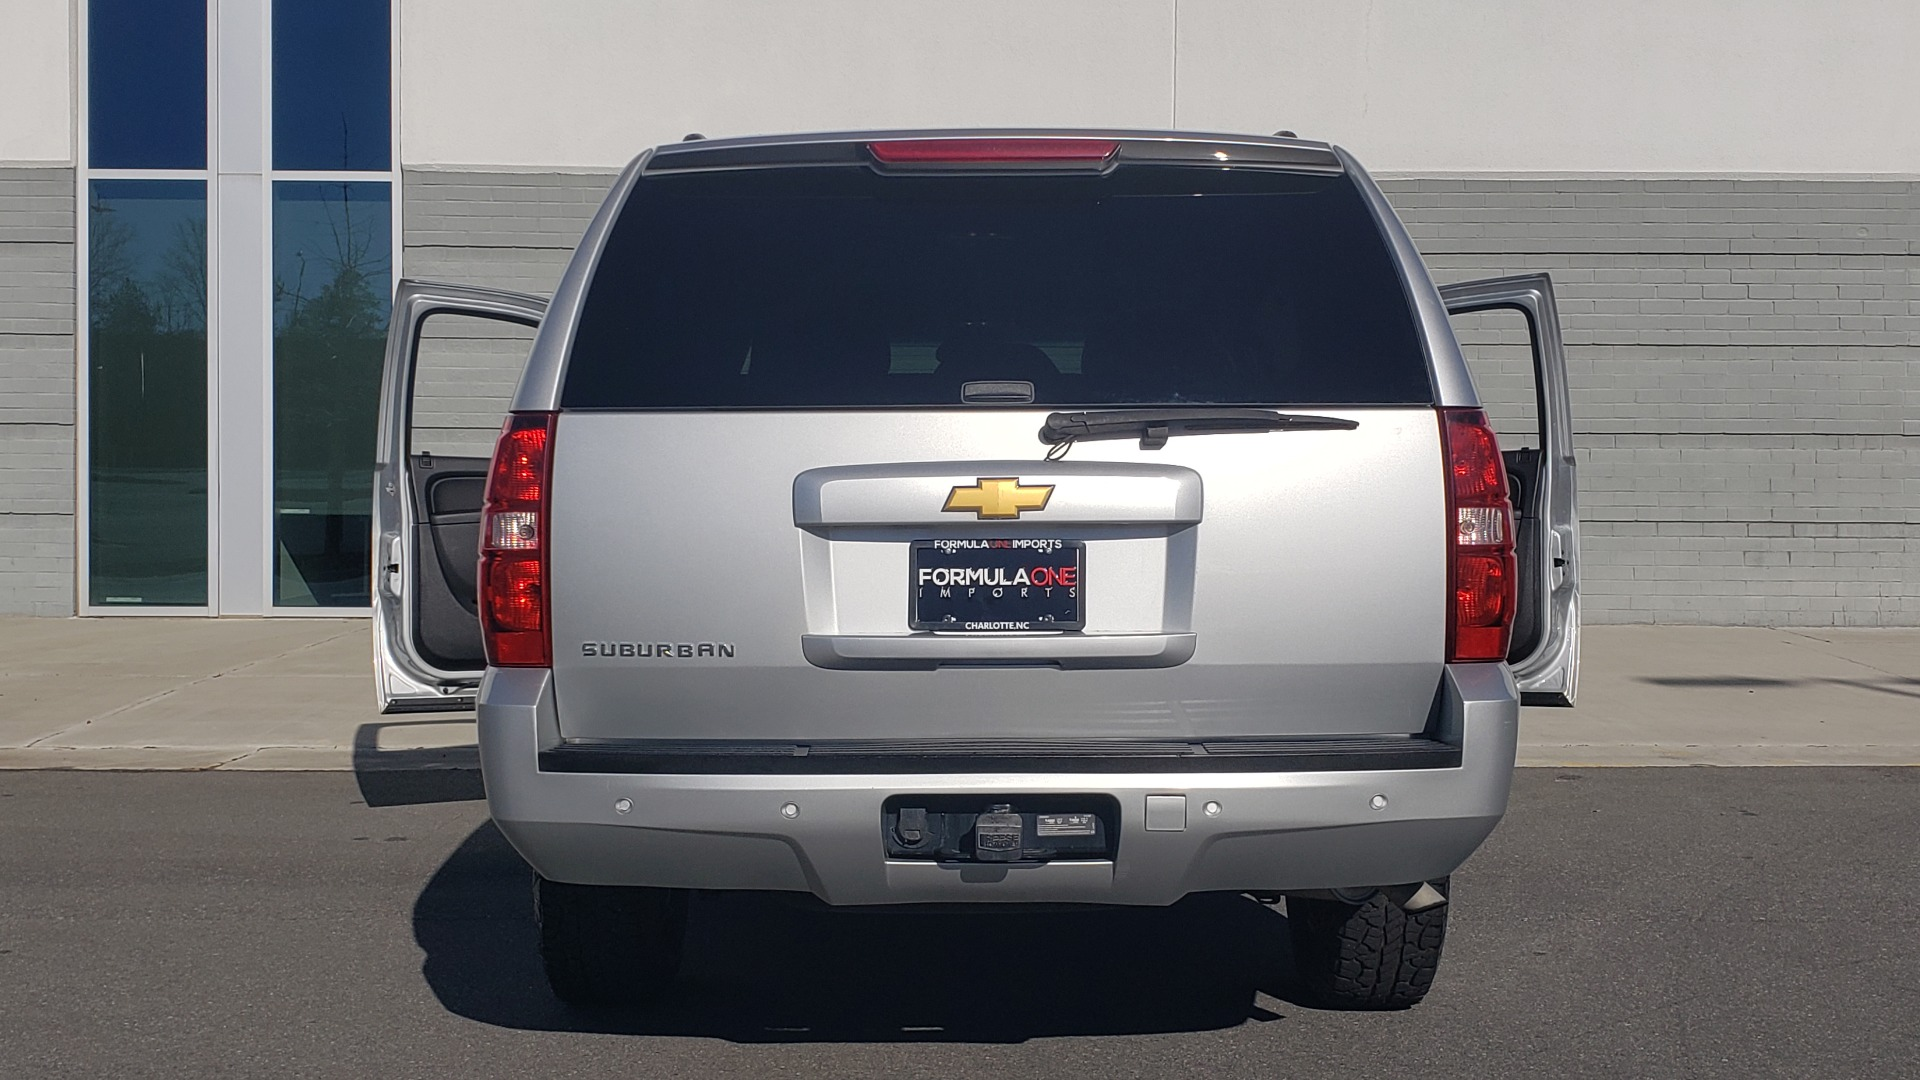 Used 2013 Chevrolet SUBURBAN LT / 2WD / 5.3L V8 / 6-SPD AUTO / LEATHER 3-ROW SEATS for sale Sold at Formula Imports in Charlotte NC 28227 29